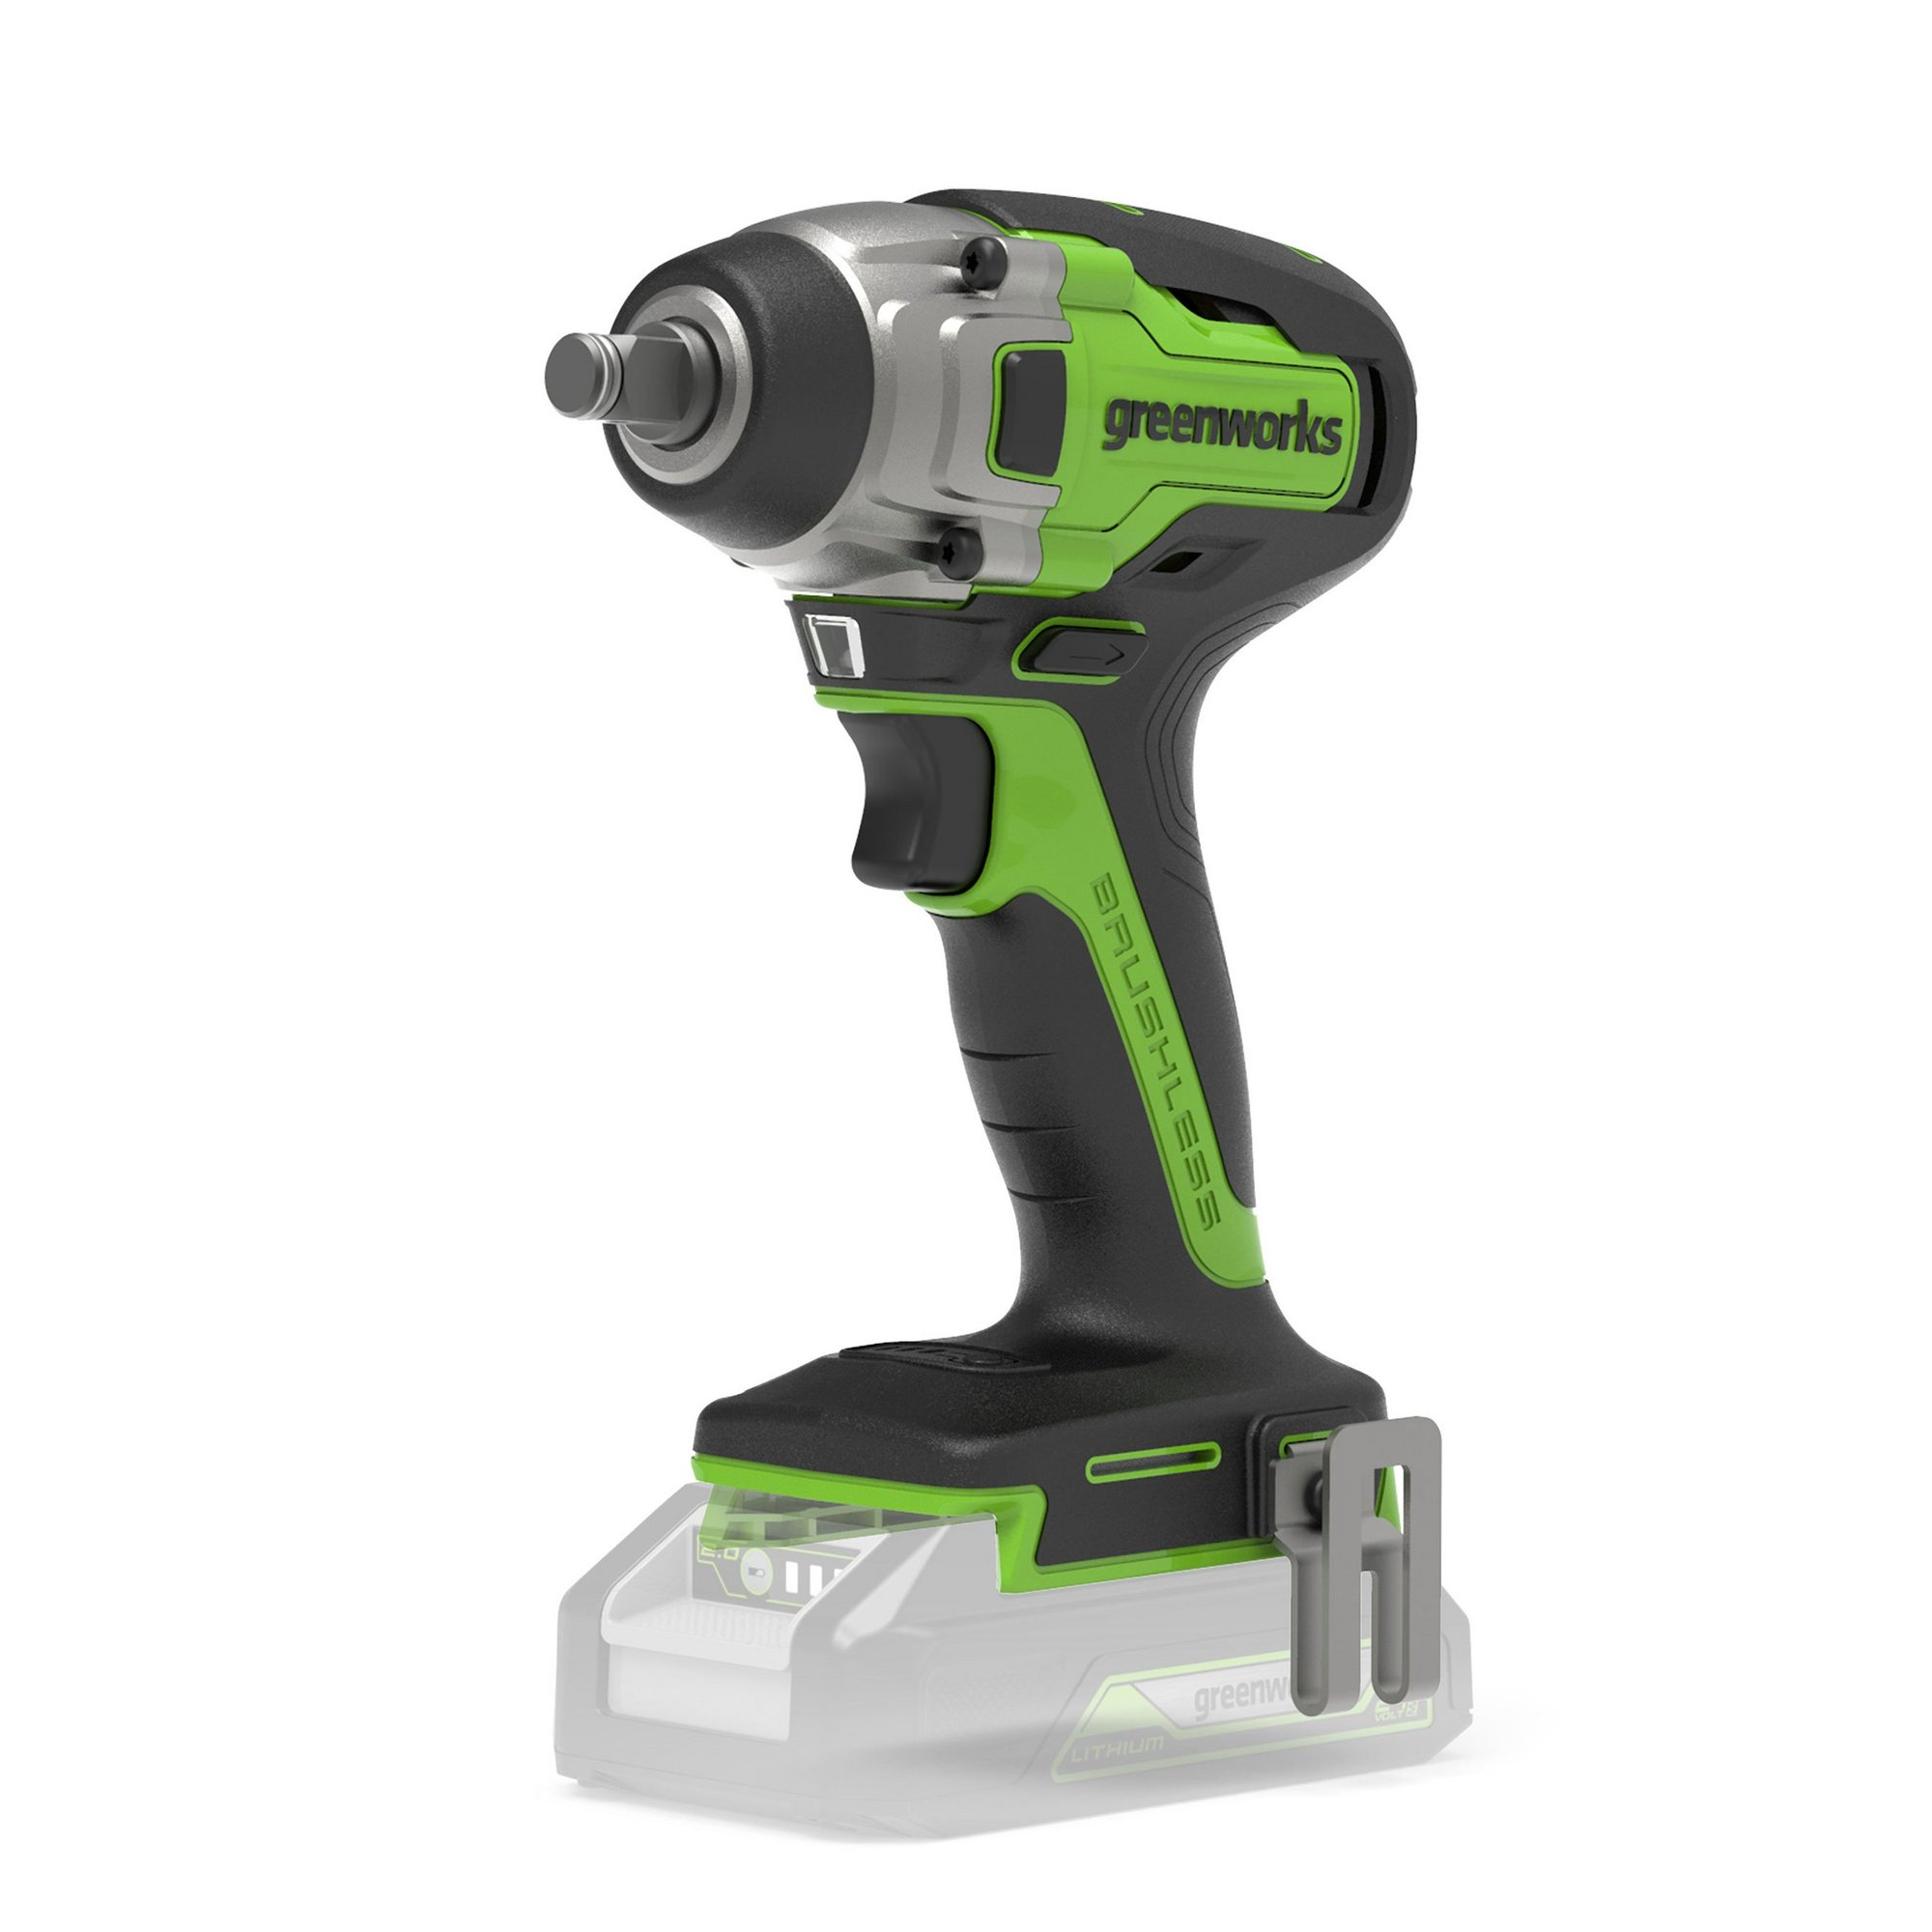 Image of Greenworks 24V Brushless Impact Wrench (Tool Only)